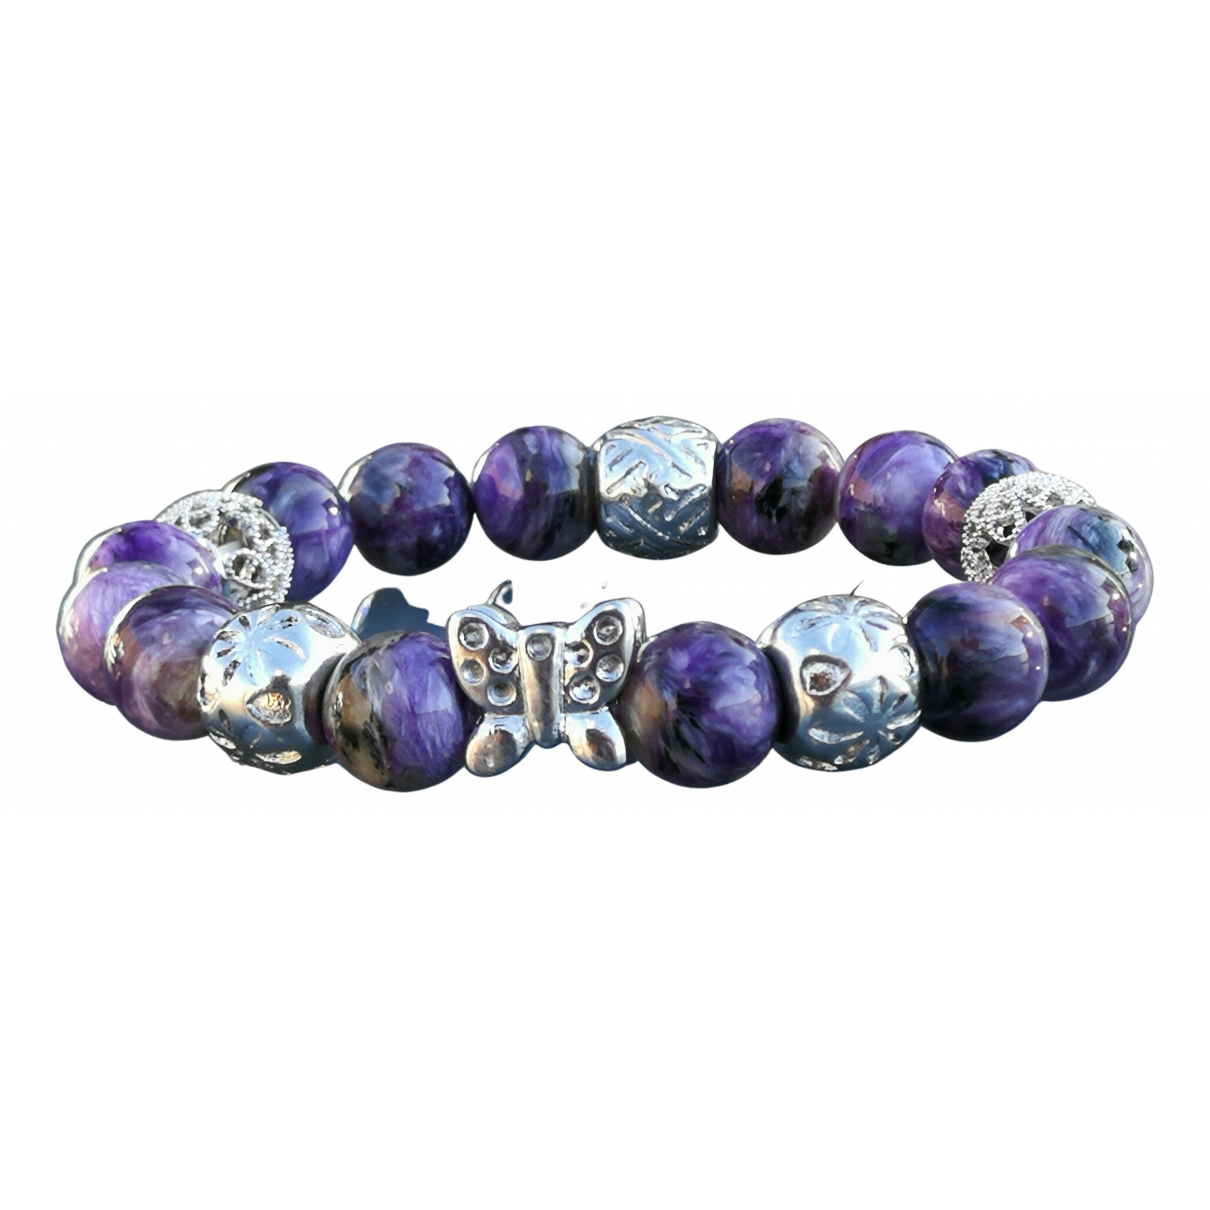 Non Signe / Unsigned \N Armband in  Lila Stahl